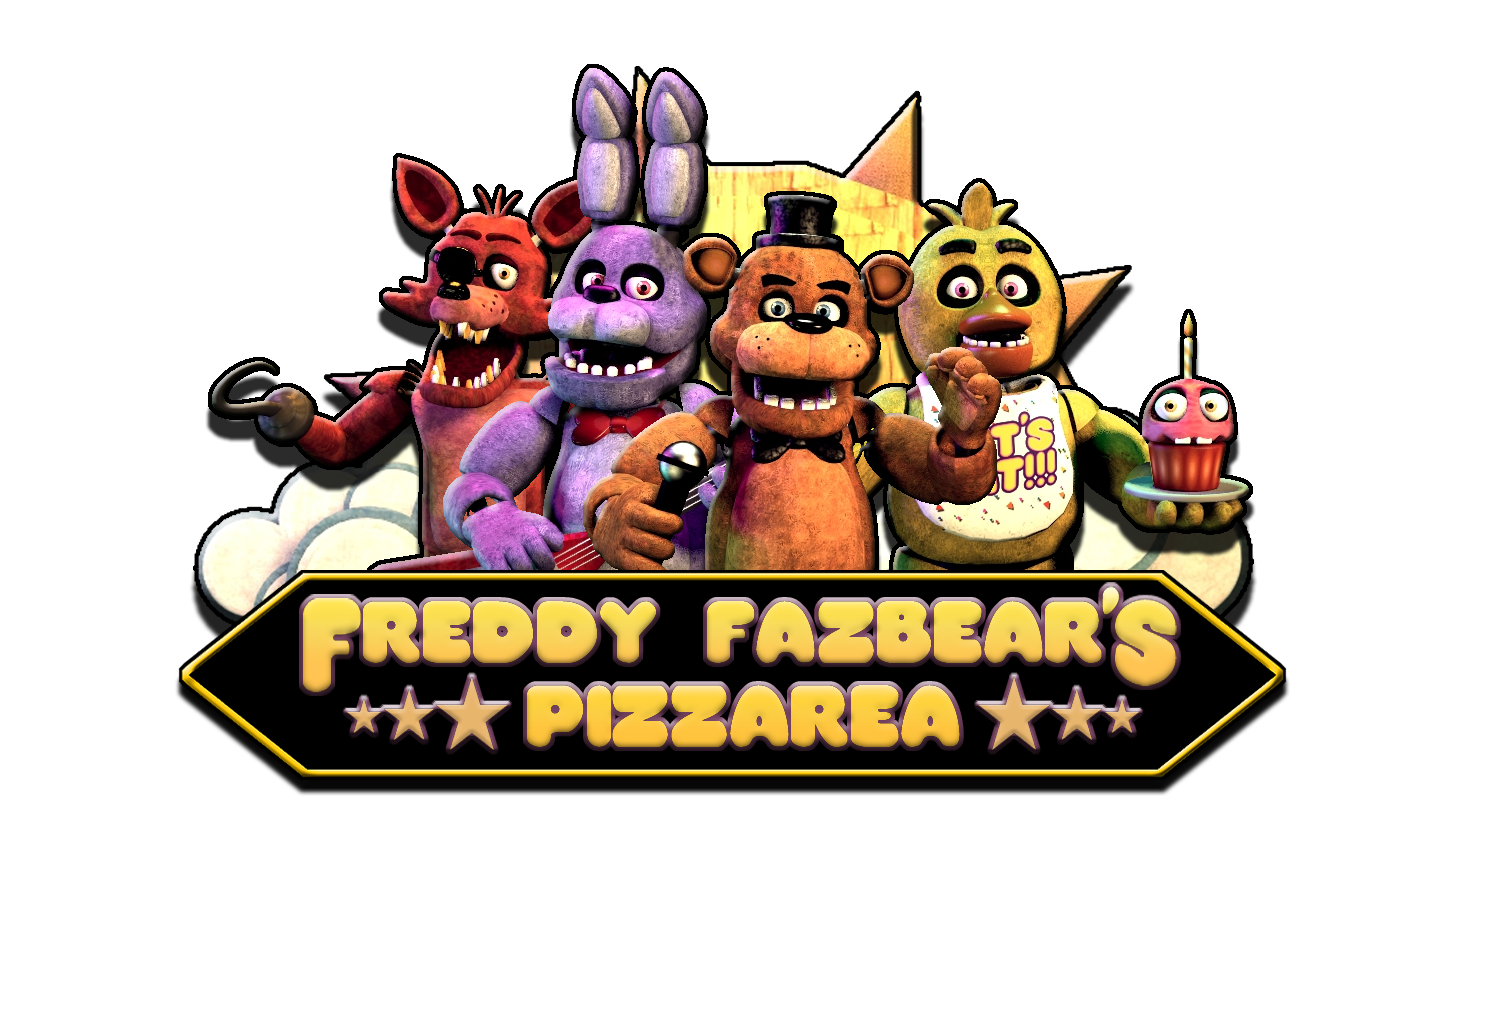 Five nights at freddys logo clipart images gallery for free download.